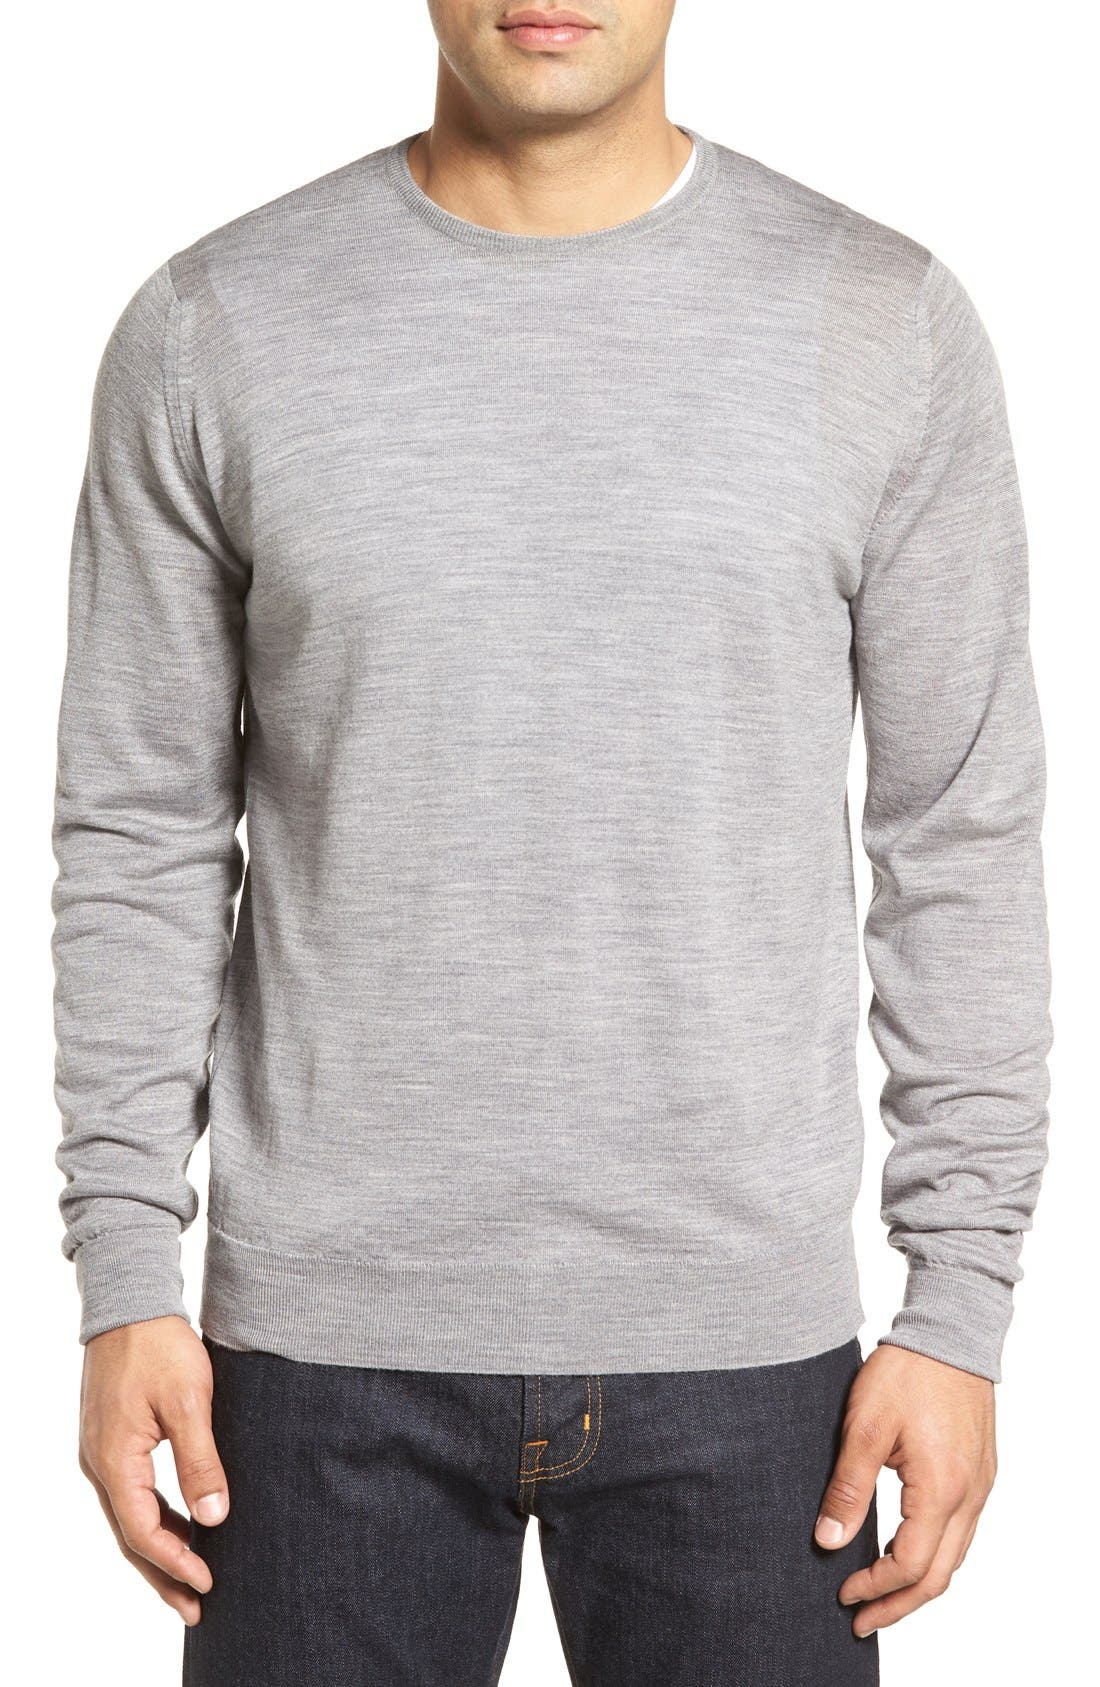 'Marcus' Easy Fit Crewneck Wool Sweater,                             Main thumbnail 1, color,                             Silver